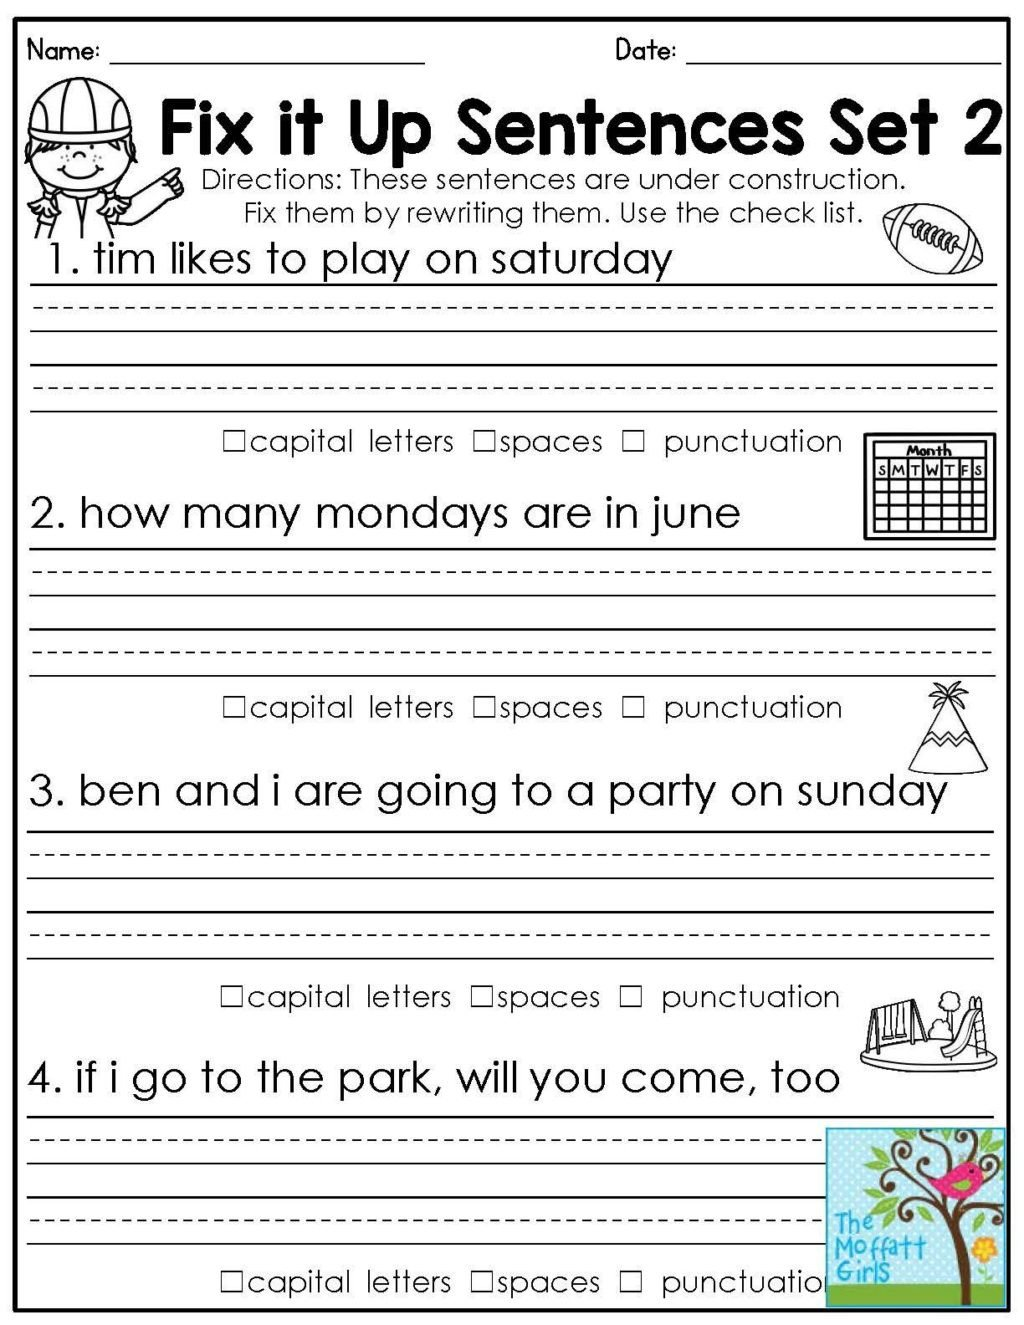 mastering grammar and language arts 2nd grade worksheets first